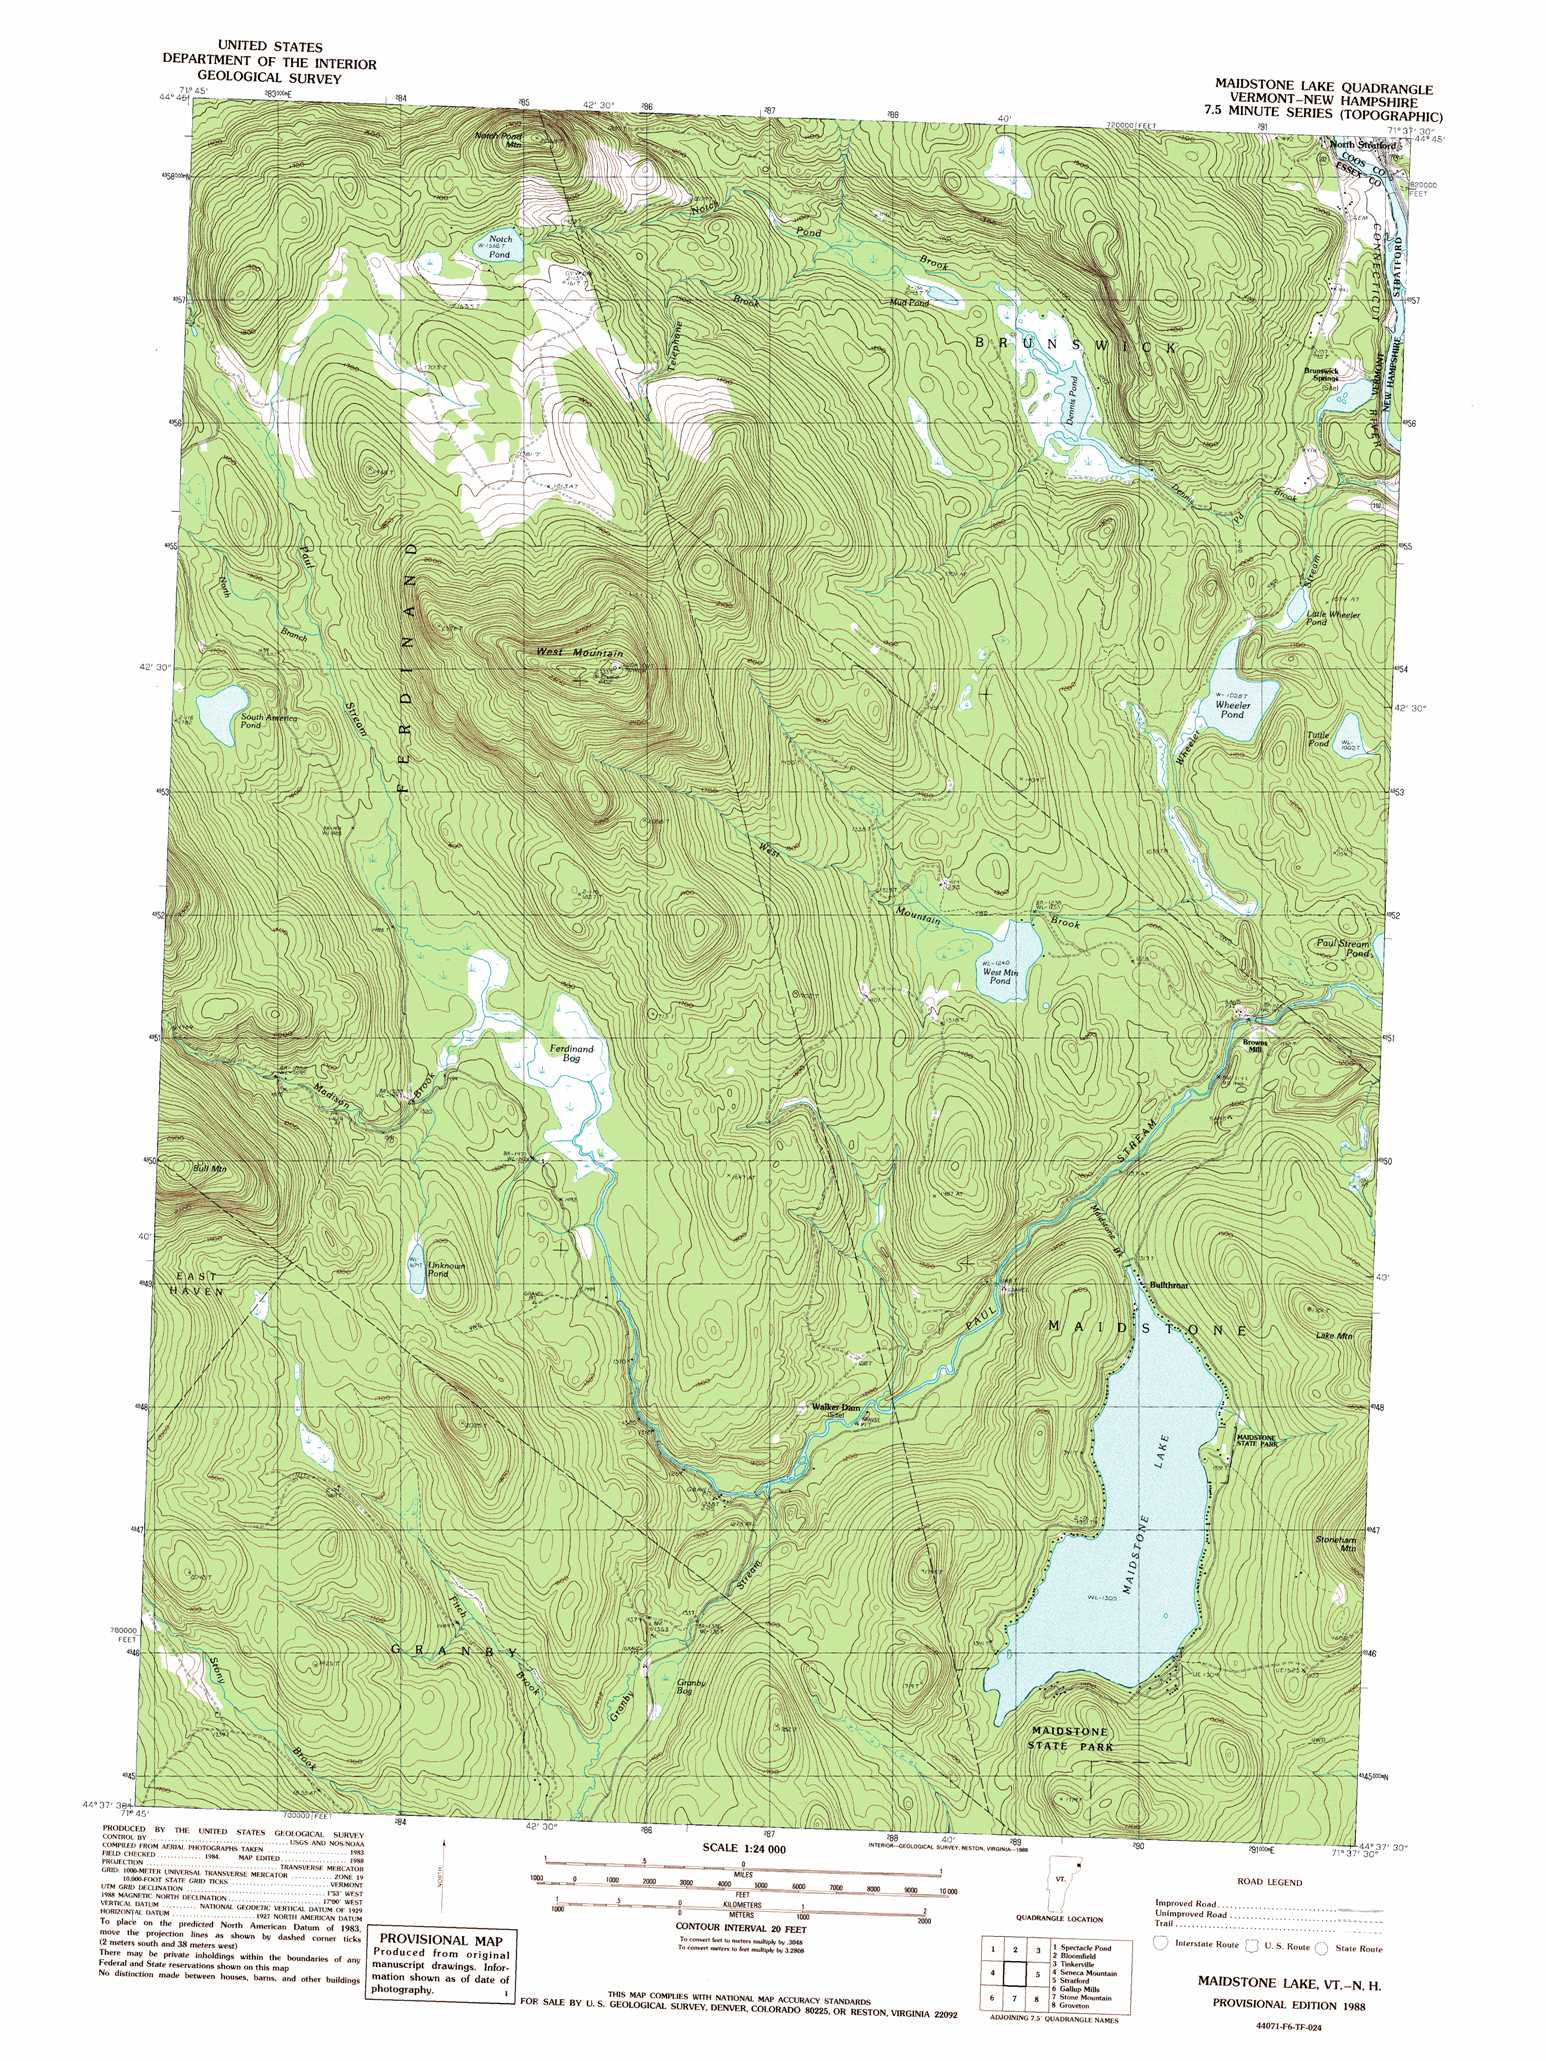 Maidstone Lake topographic map VT NH USGS Topo Quad 44071f6